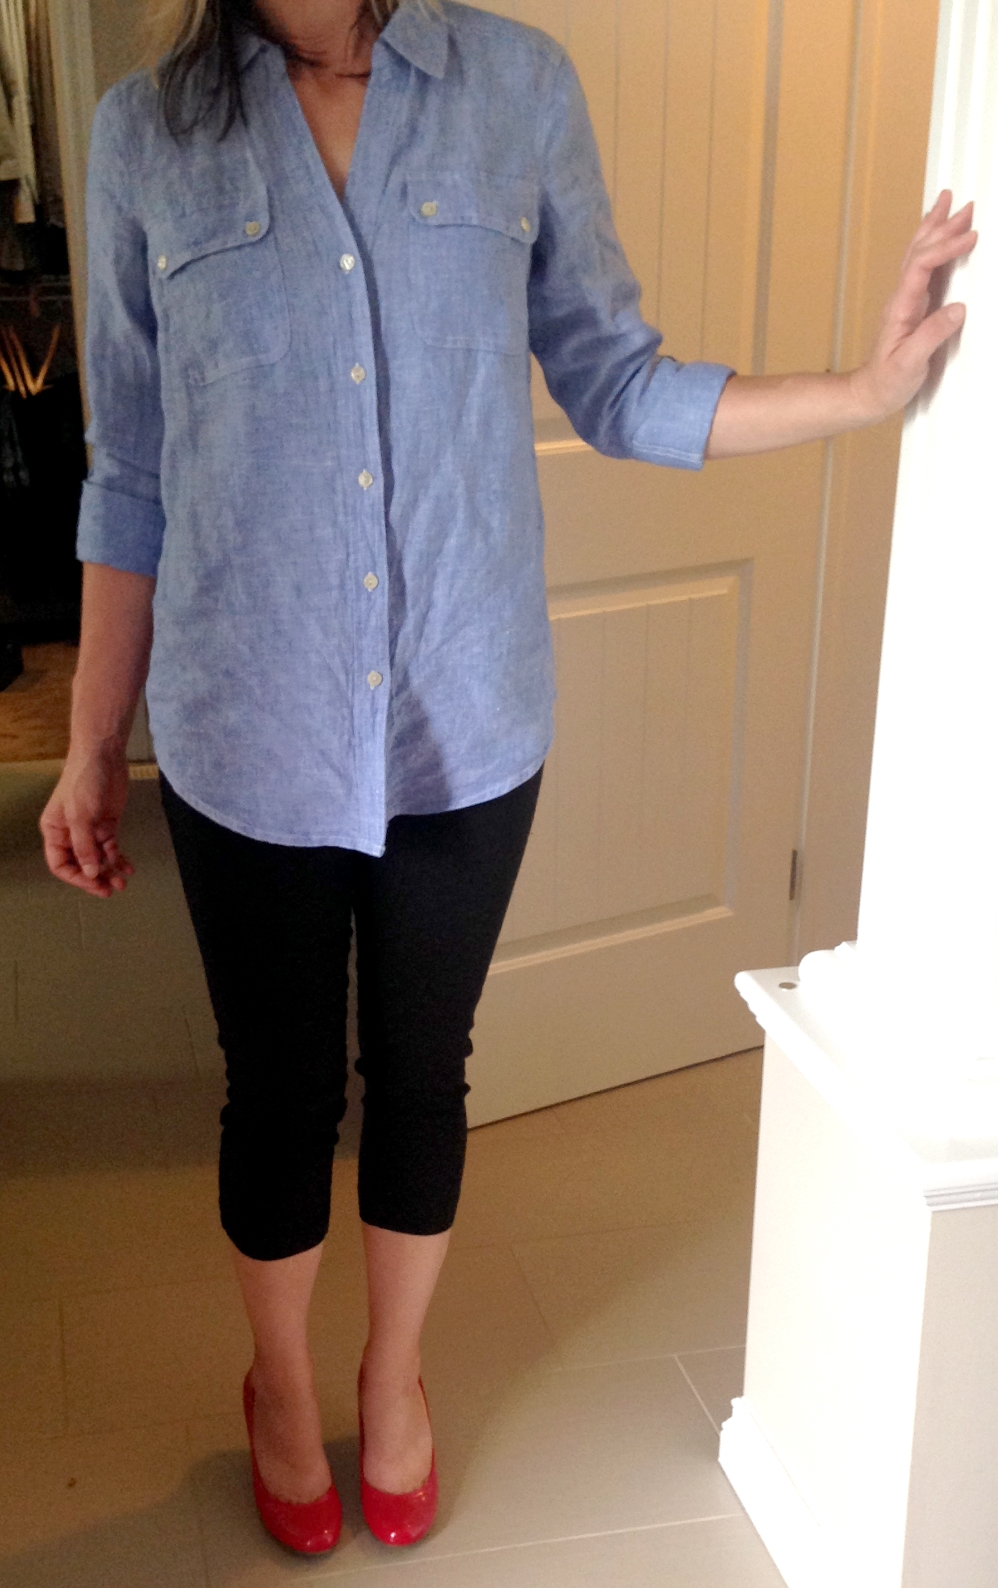 One of the easiest and chicest ways to style a chambray is simple - loose over skinny black denim or leggings with a pop of colour.  Thank God for those red shoes - they're fab!